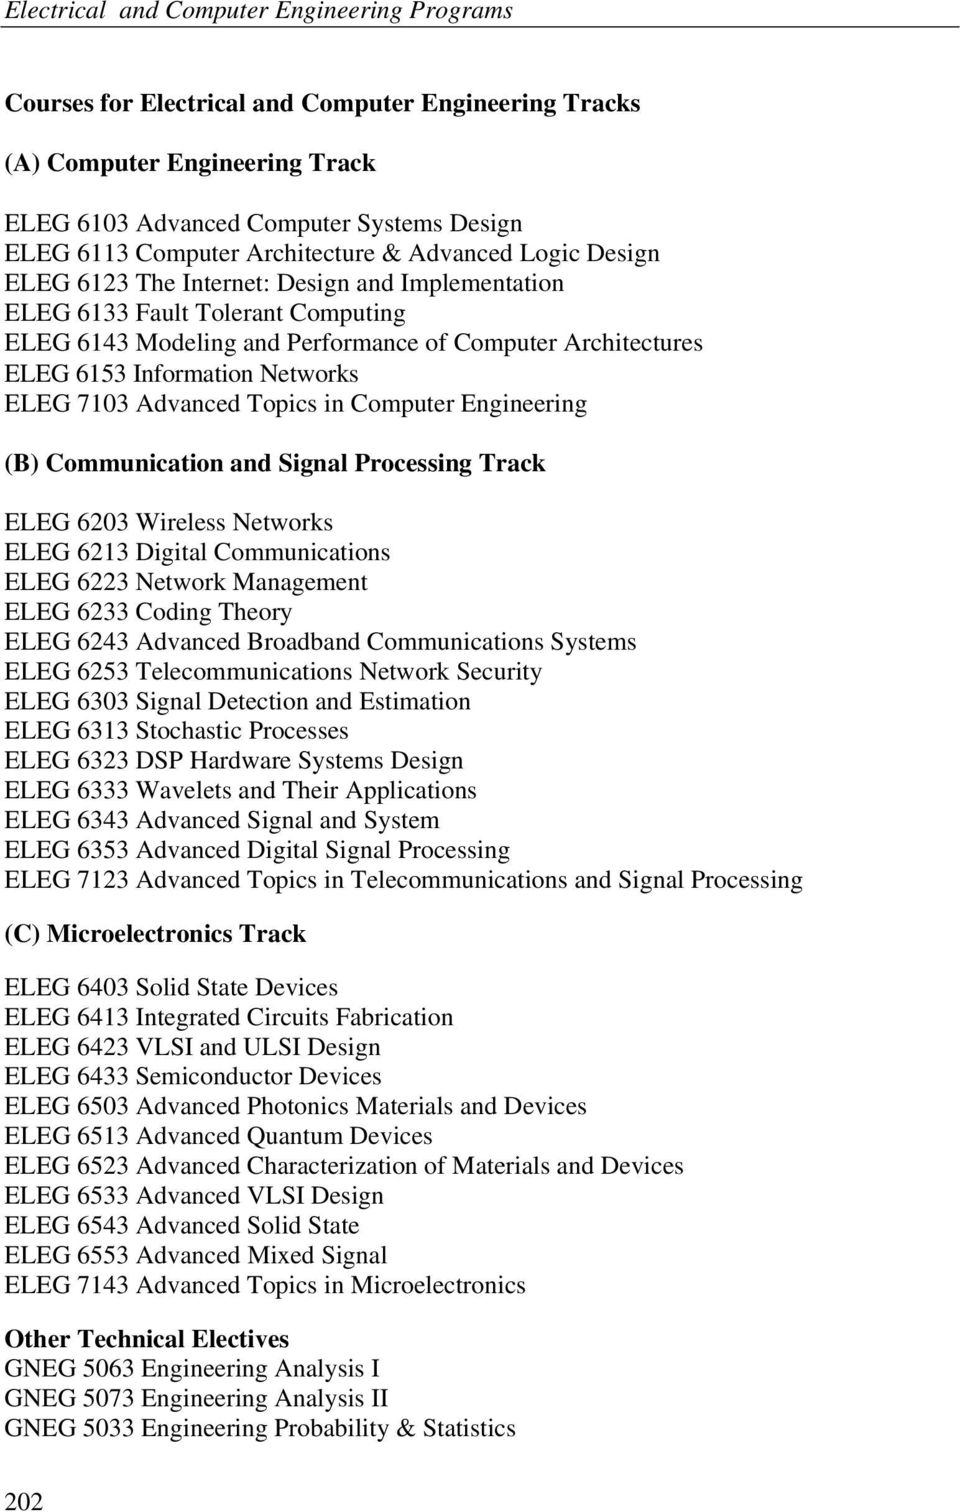 Computer Engineering (B) Communication and Signal Processing Track ELEG 6203 Wireless Networks ELEG 6213 Digital Communications ELEG 6223 Network Management ELEG 6233 Coding Theory ELEG 6243 Advanced